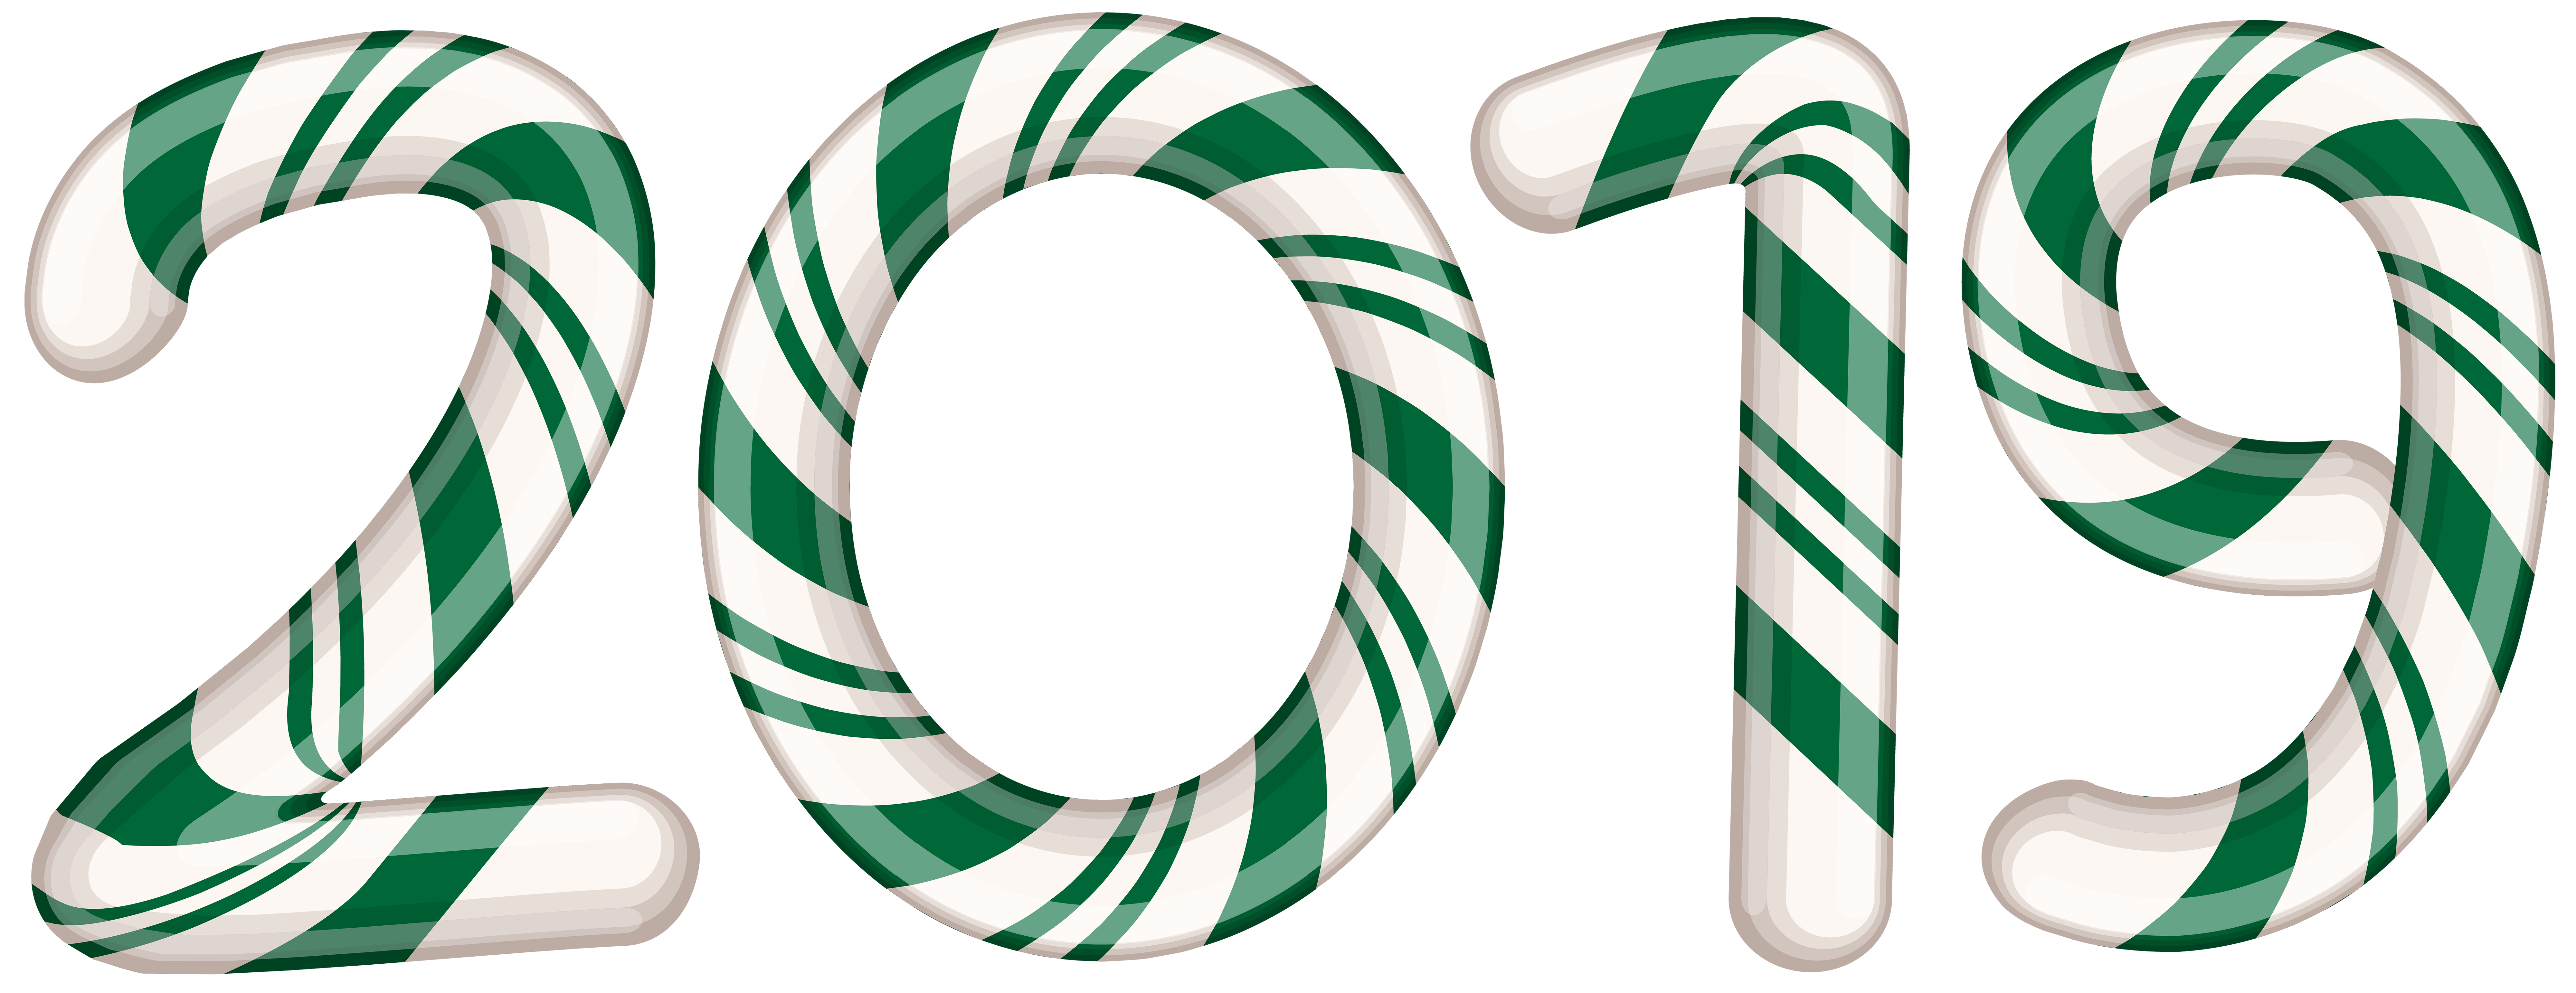 2019 Candy Cane Green PNG Clip Art Image.